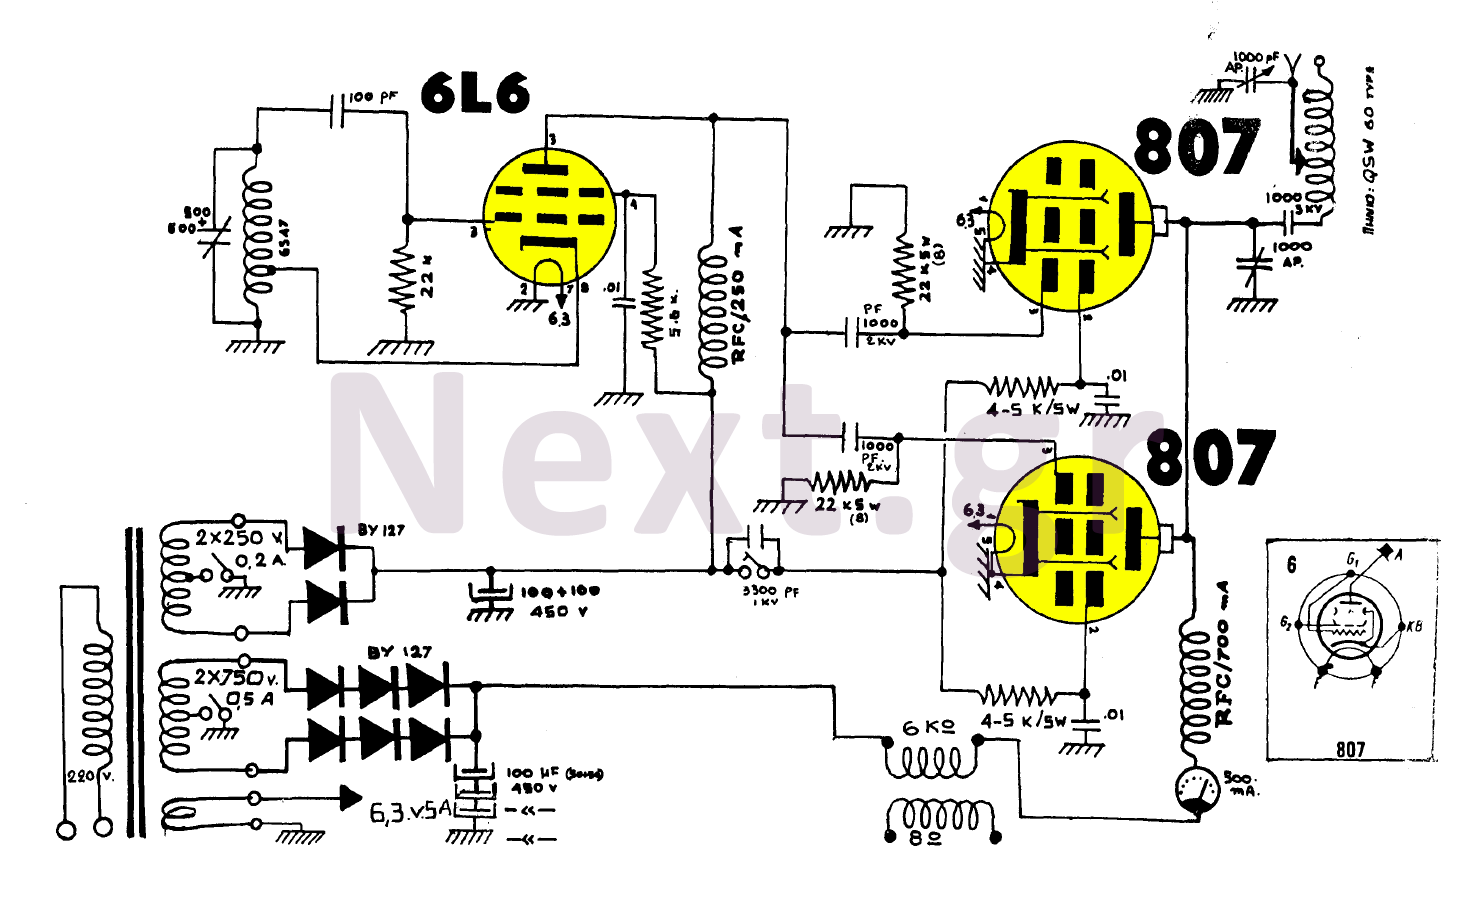 100w Am Valve Transmitter Circuit Electronice N 2018 Pinterest Single Chip Fm Diagram